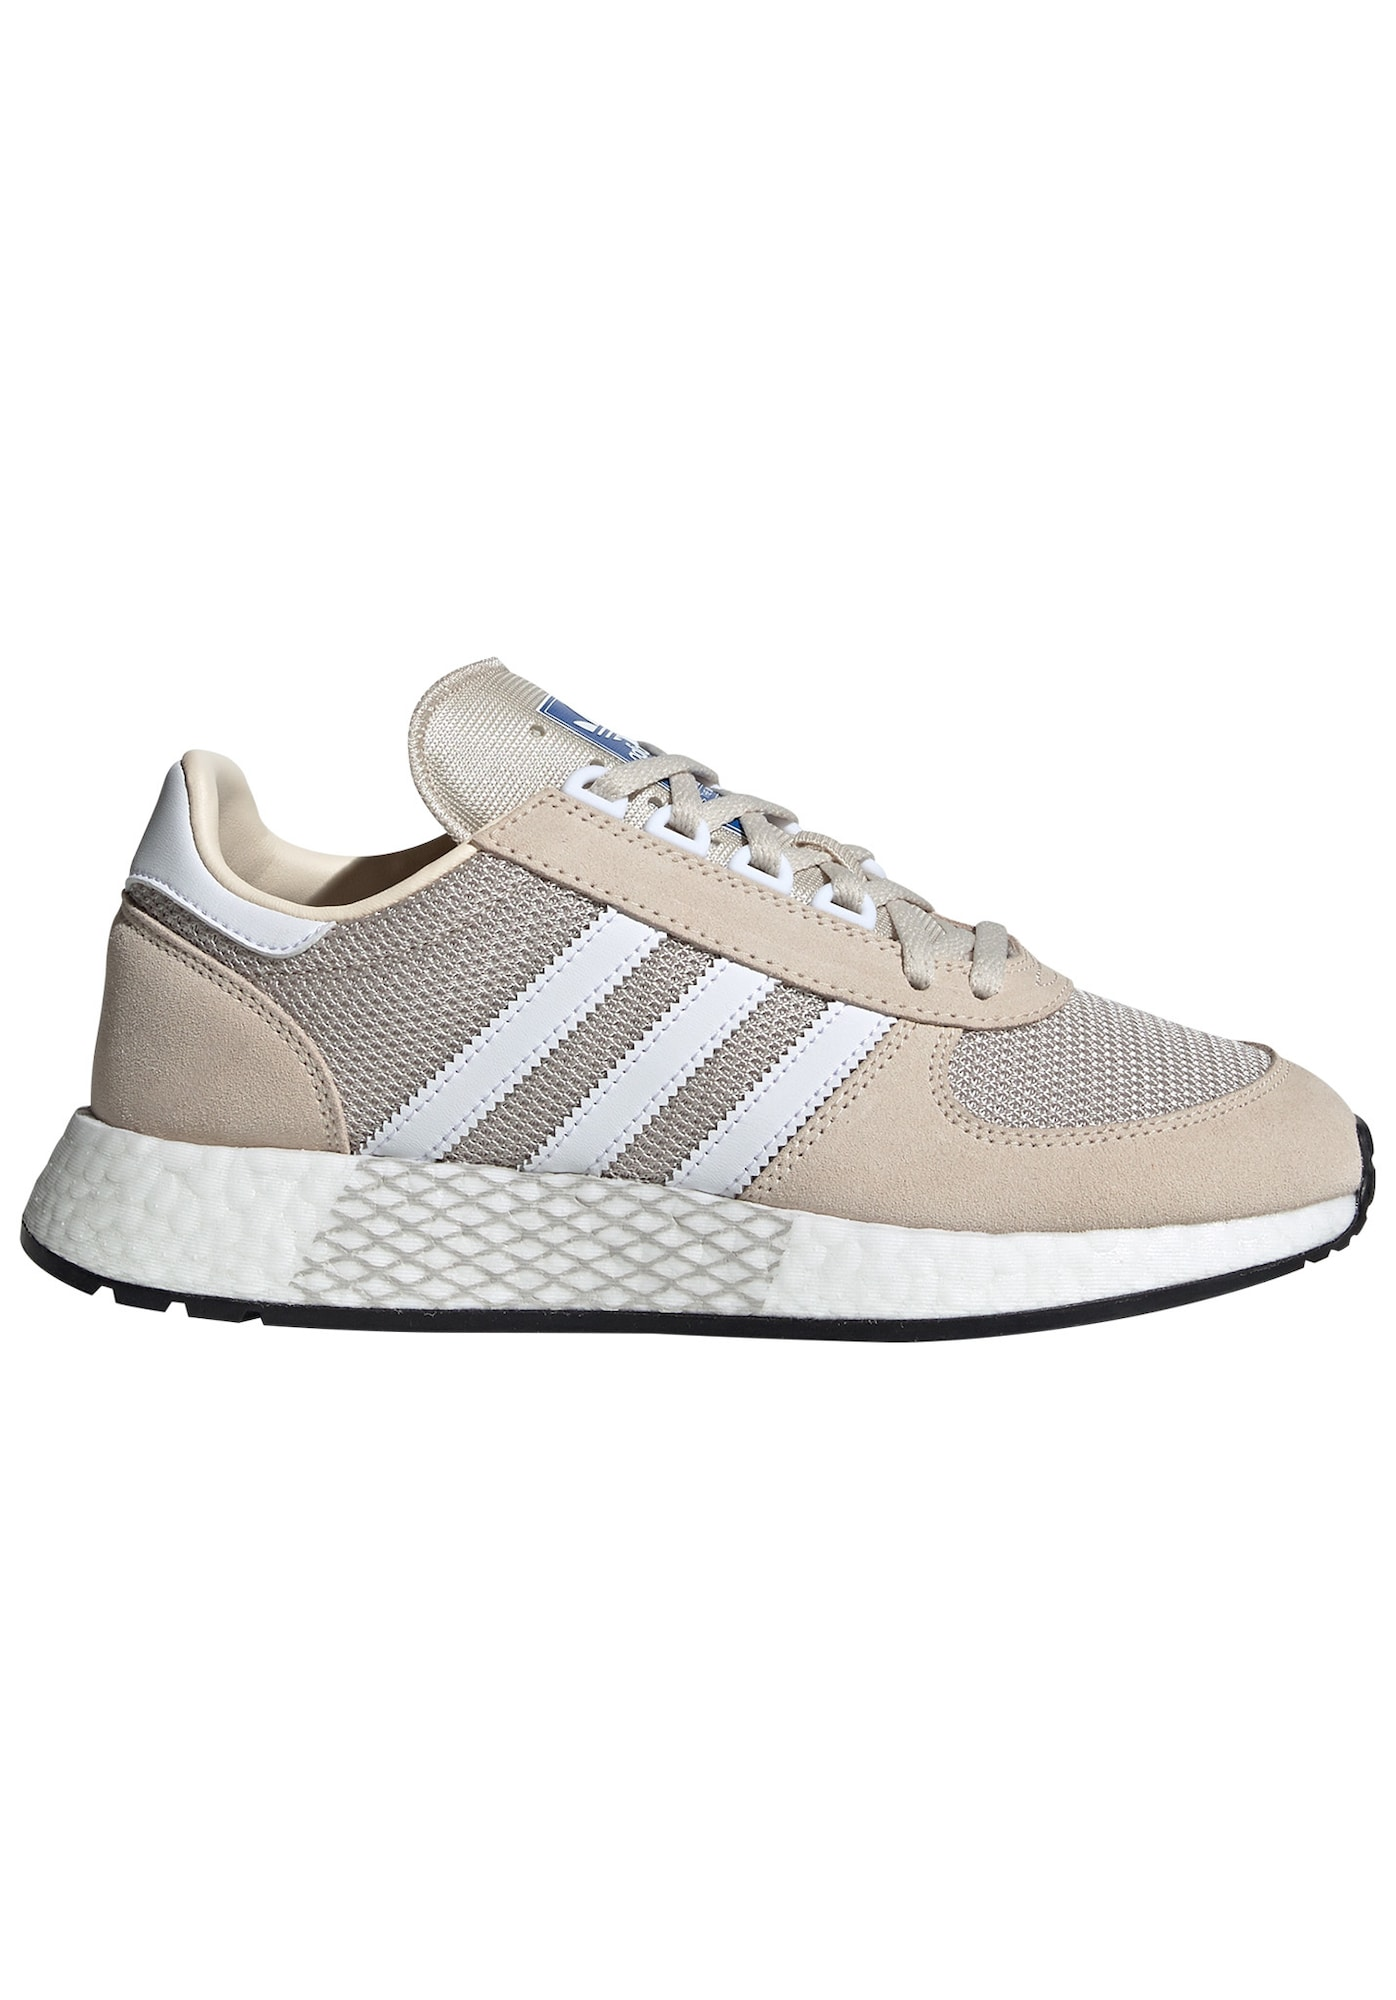 adidas originals - Sneaker 'Marathon Tech'